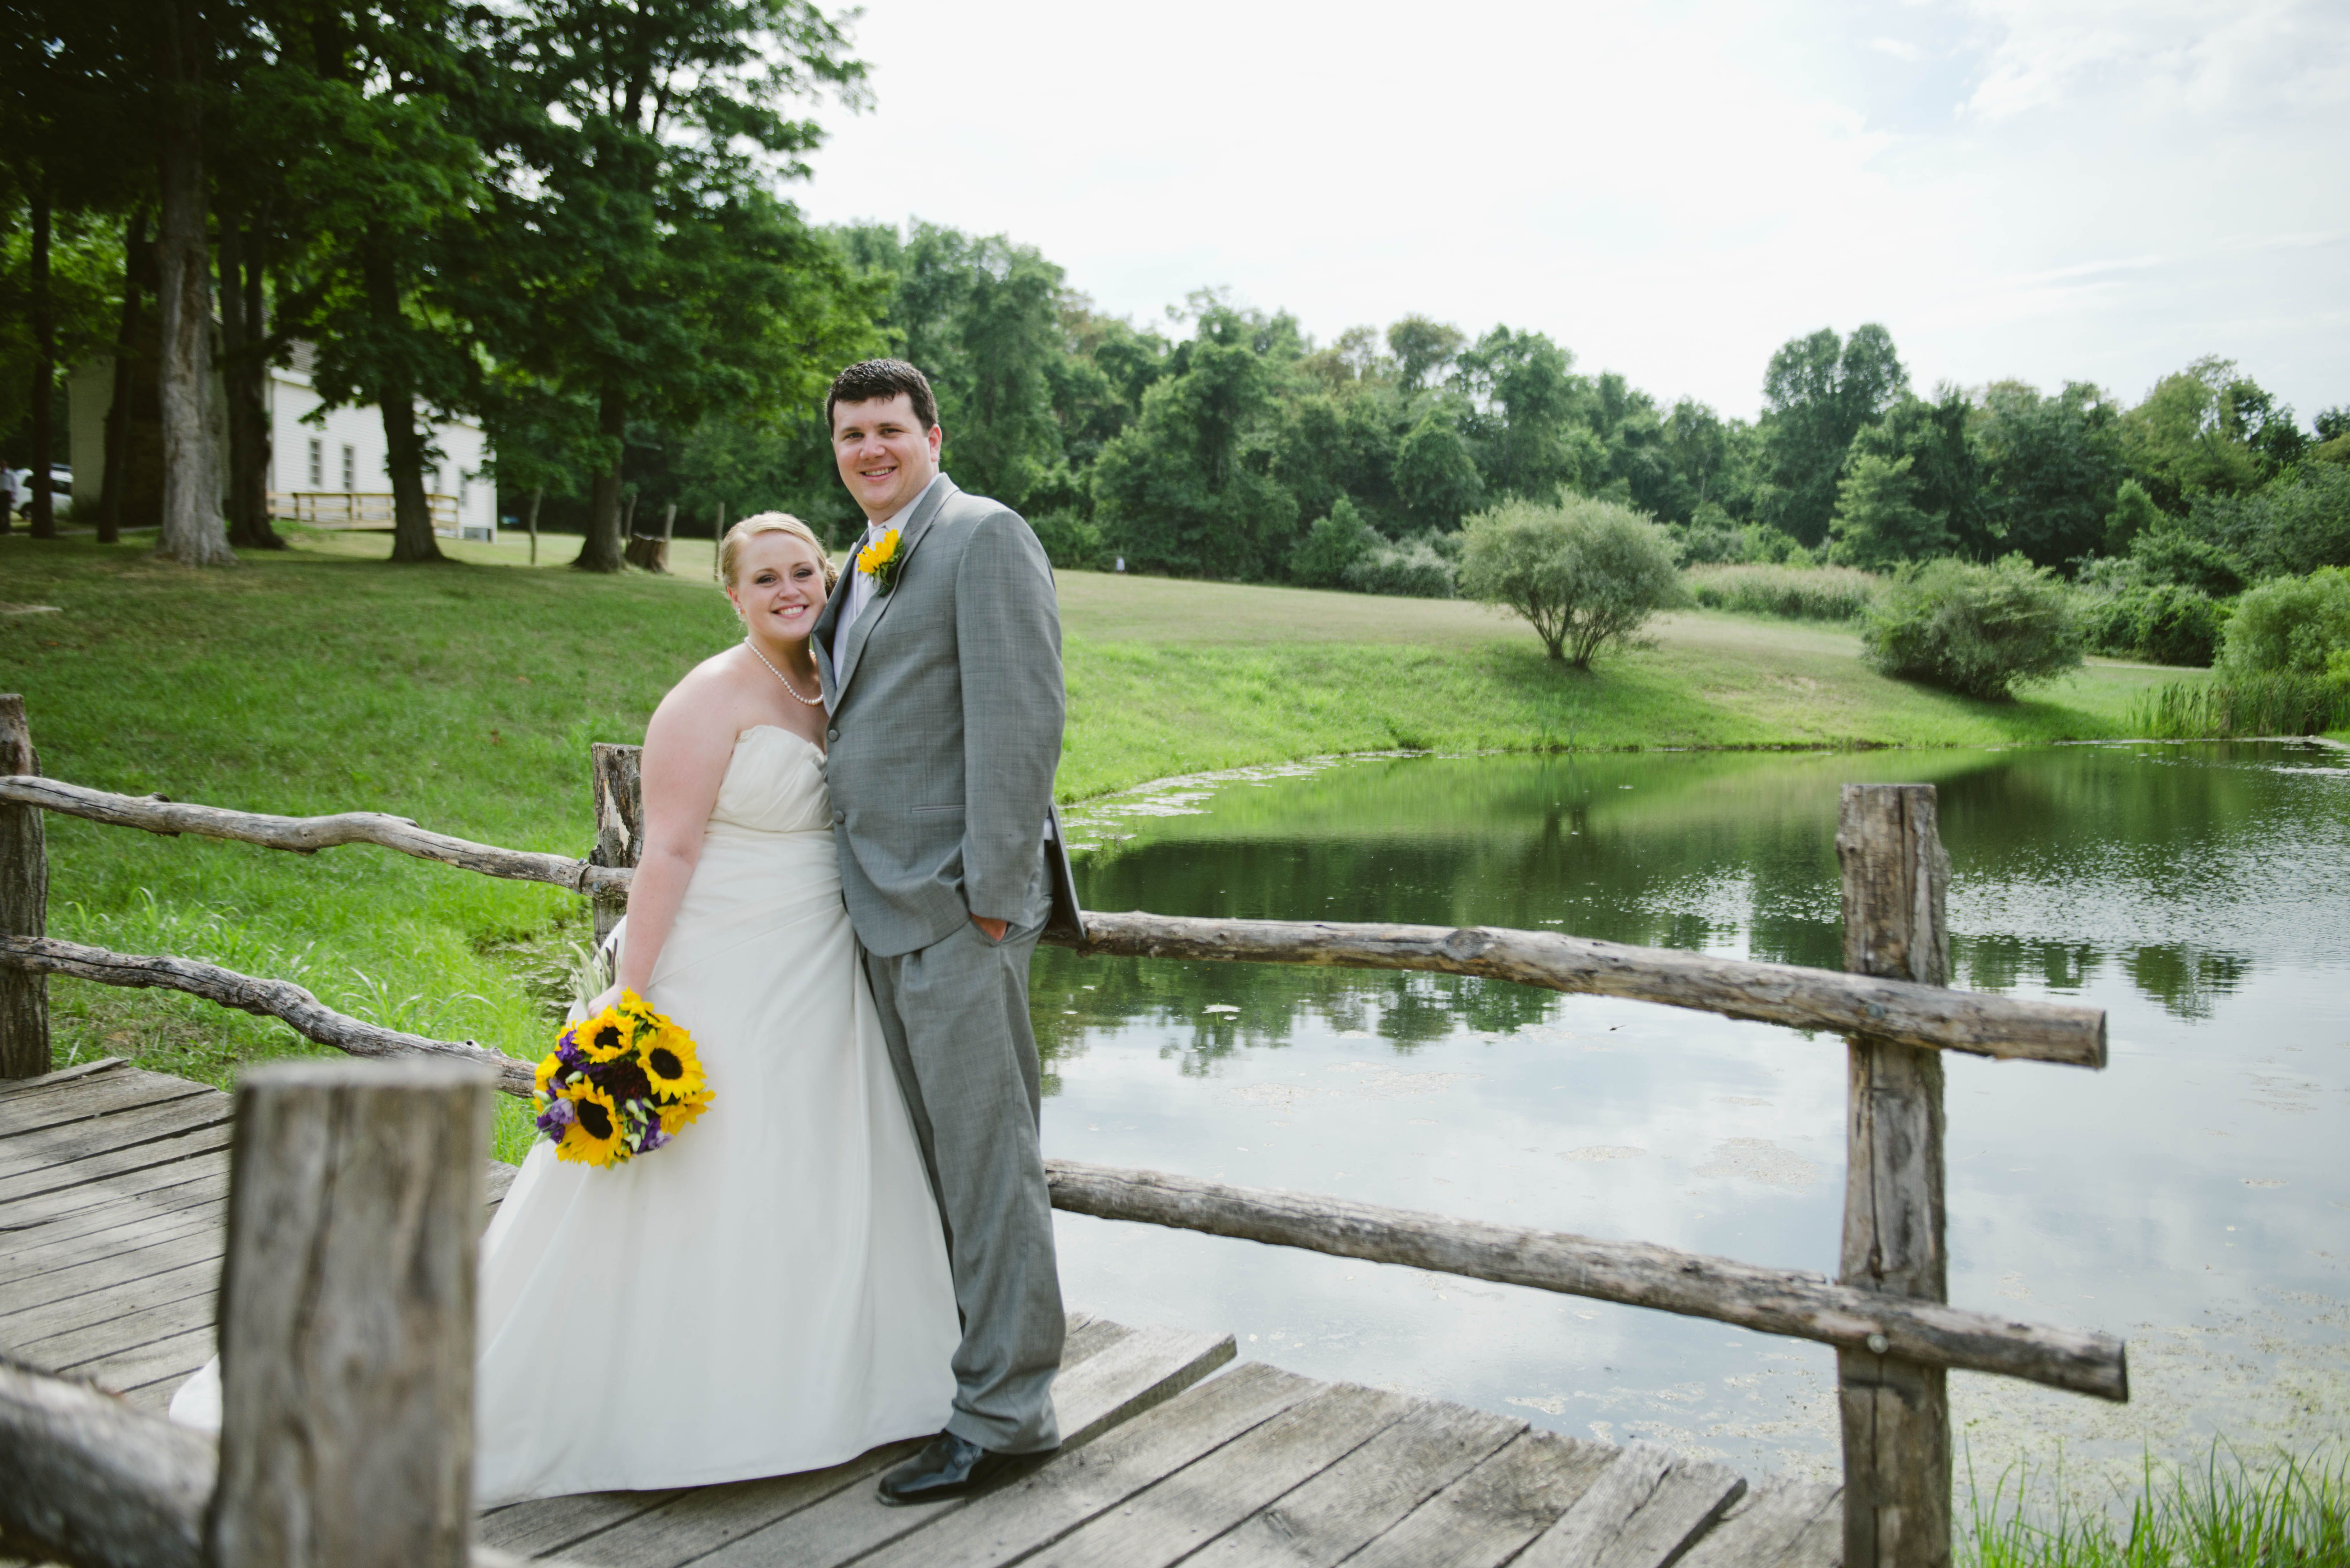 Us on the bridge after the wedding ceremony. Adena Mansions and Gardens. Photograph by Ashley West Photography